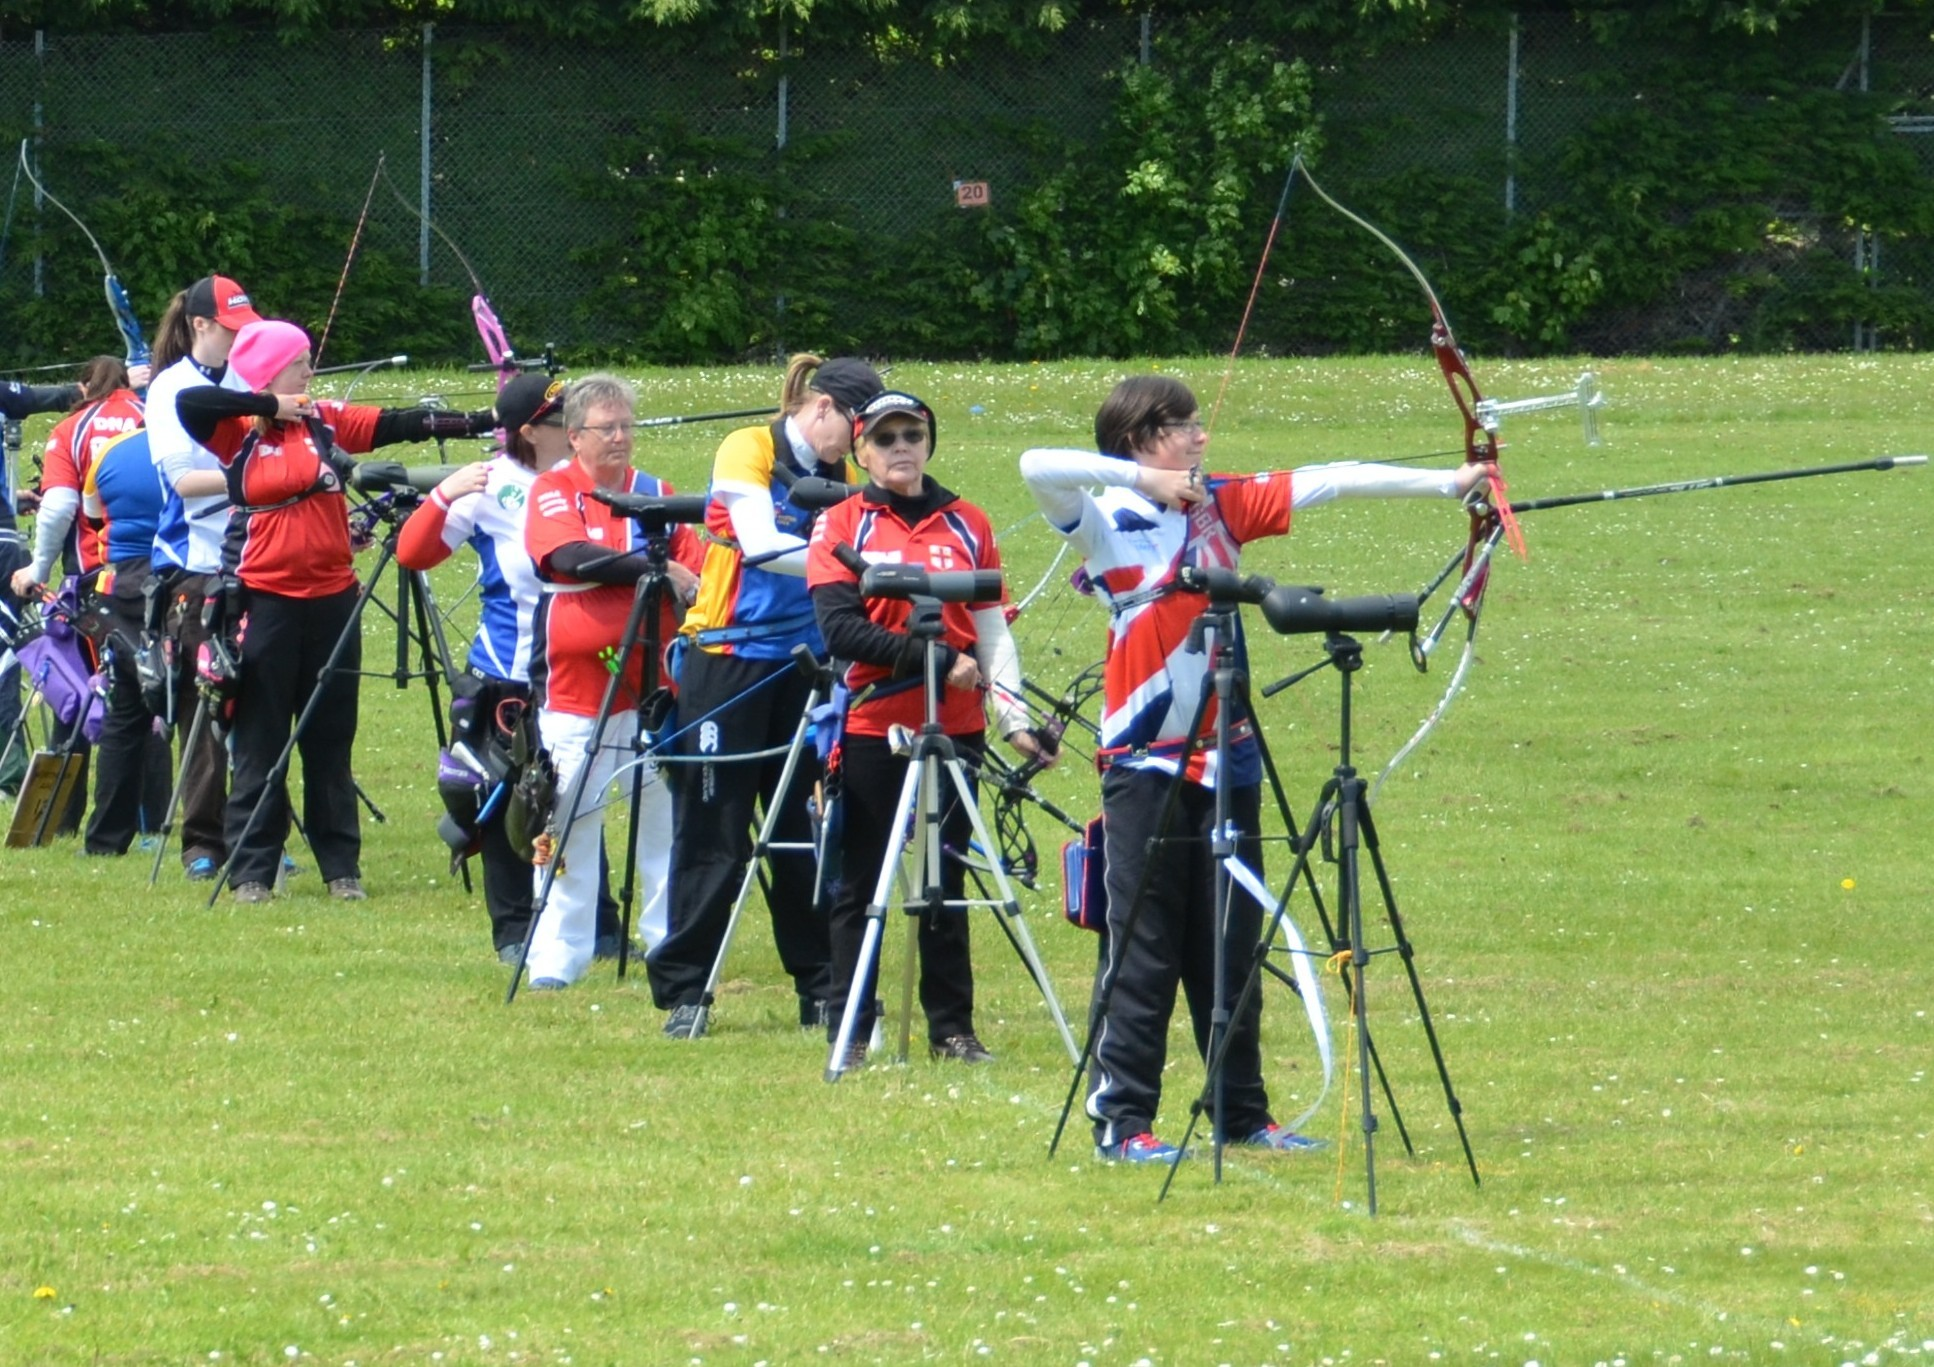 Archers using Mearns Academy's playing fields, which won't  be sold off.